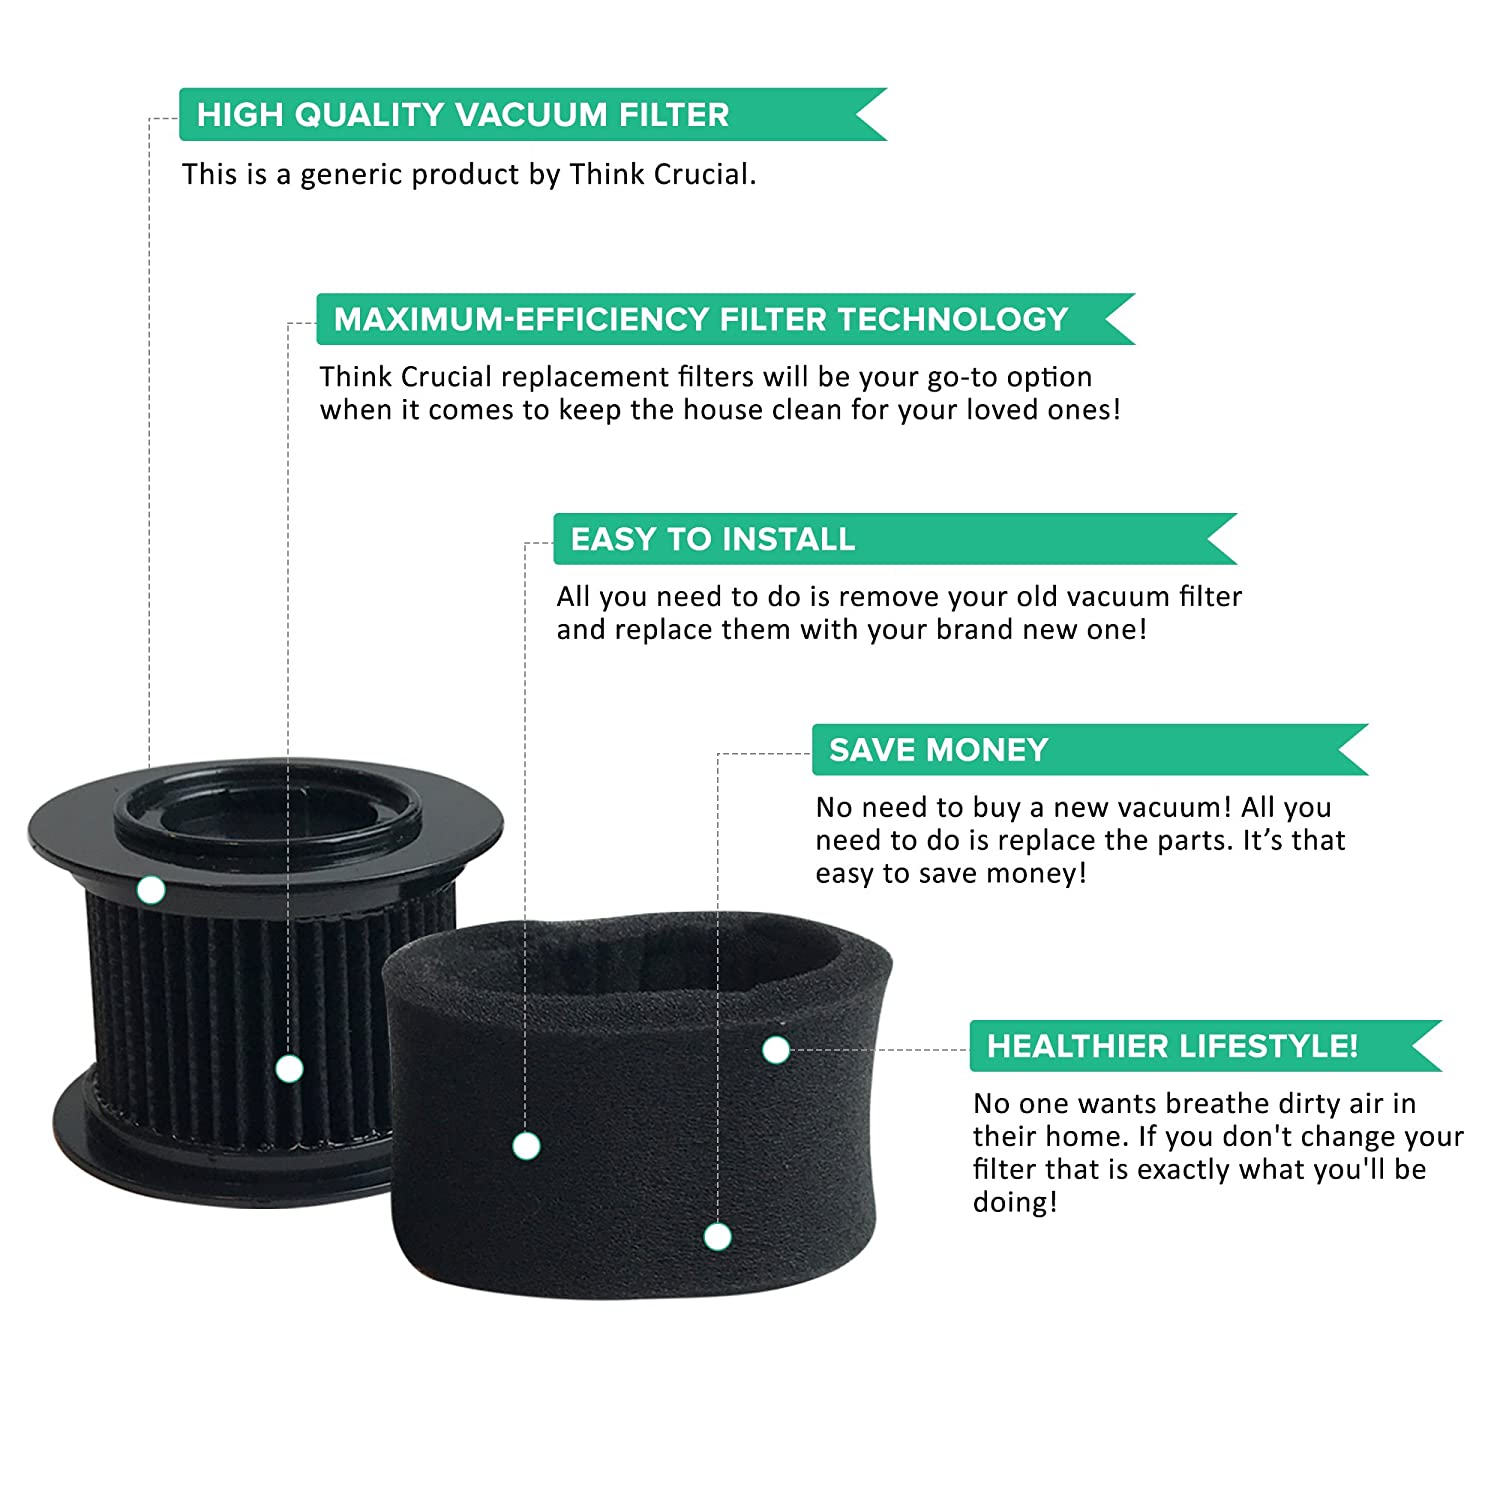 Washable Dust Cup Vacuum Air Filters Parts Replace Filter Part 54A2 - 4 Pack Compatible with Bissell PowerEdge Hard Floor Vacuum Models 81L2 and 81L2T Crucial Vacuum Replacement Air Filter Think Crucial 81L2 81L2A